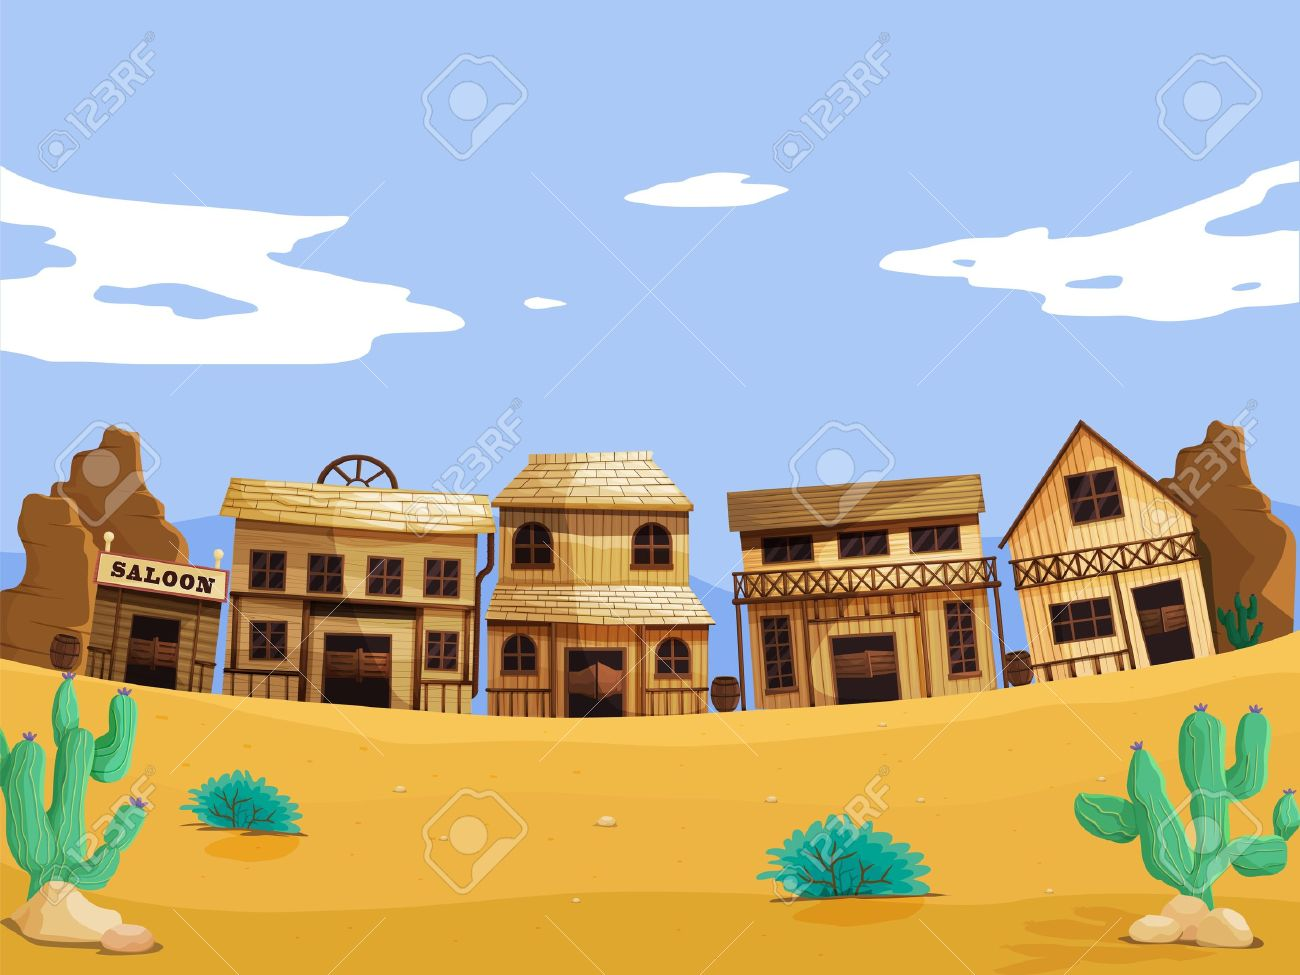 hight resolution of vector wild west illustration scene with detail